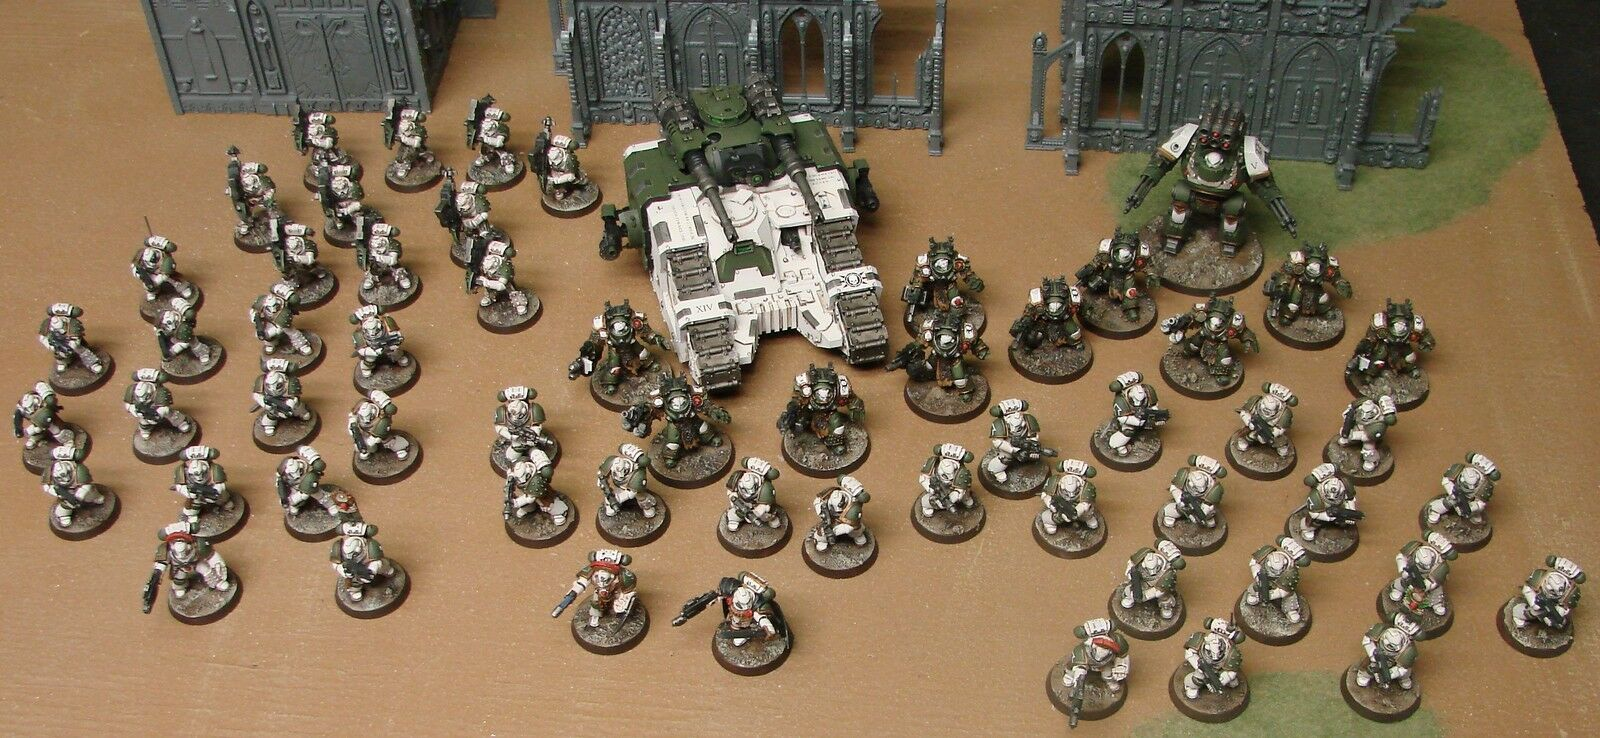 Ironwarboss Miniatures and Games